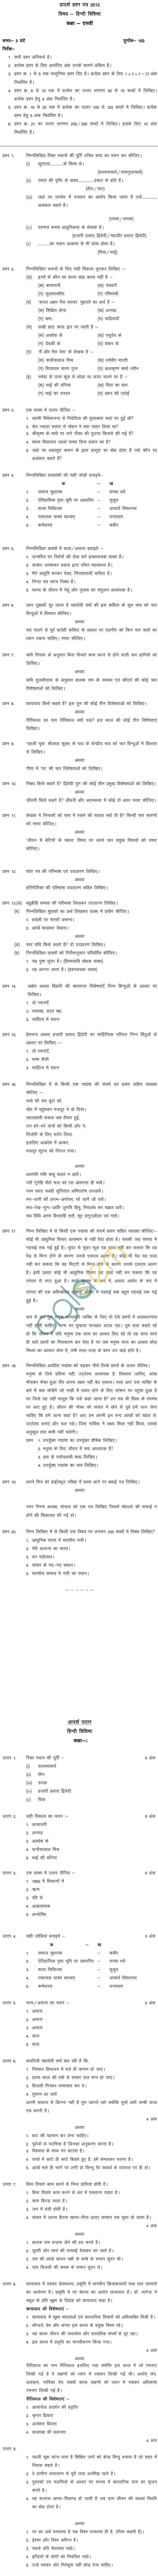 MP Board Class X Hindi Special Model Questions & Answers - Set 3